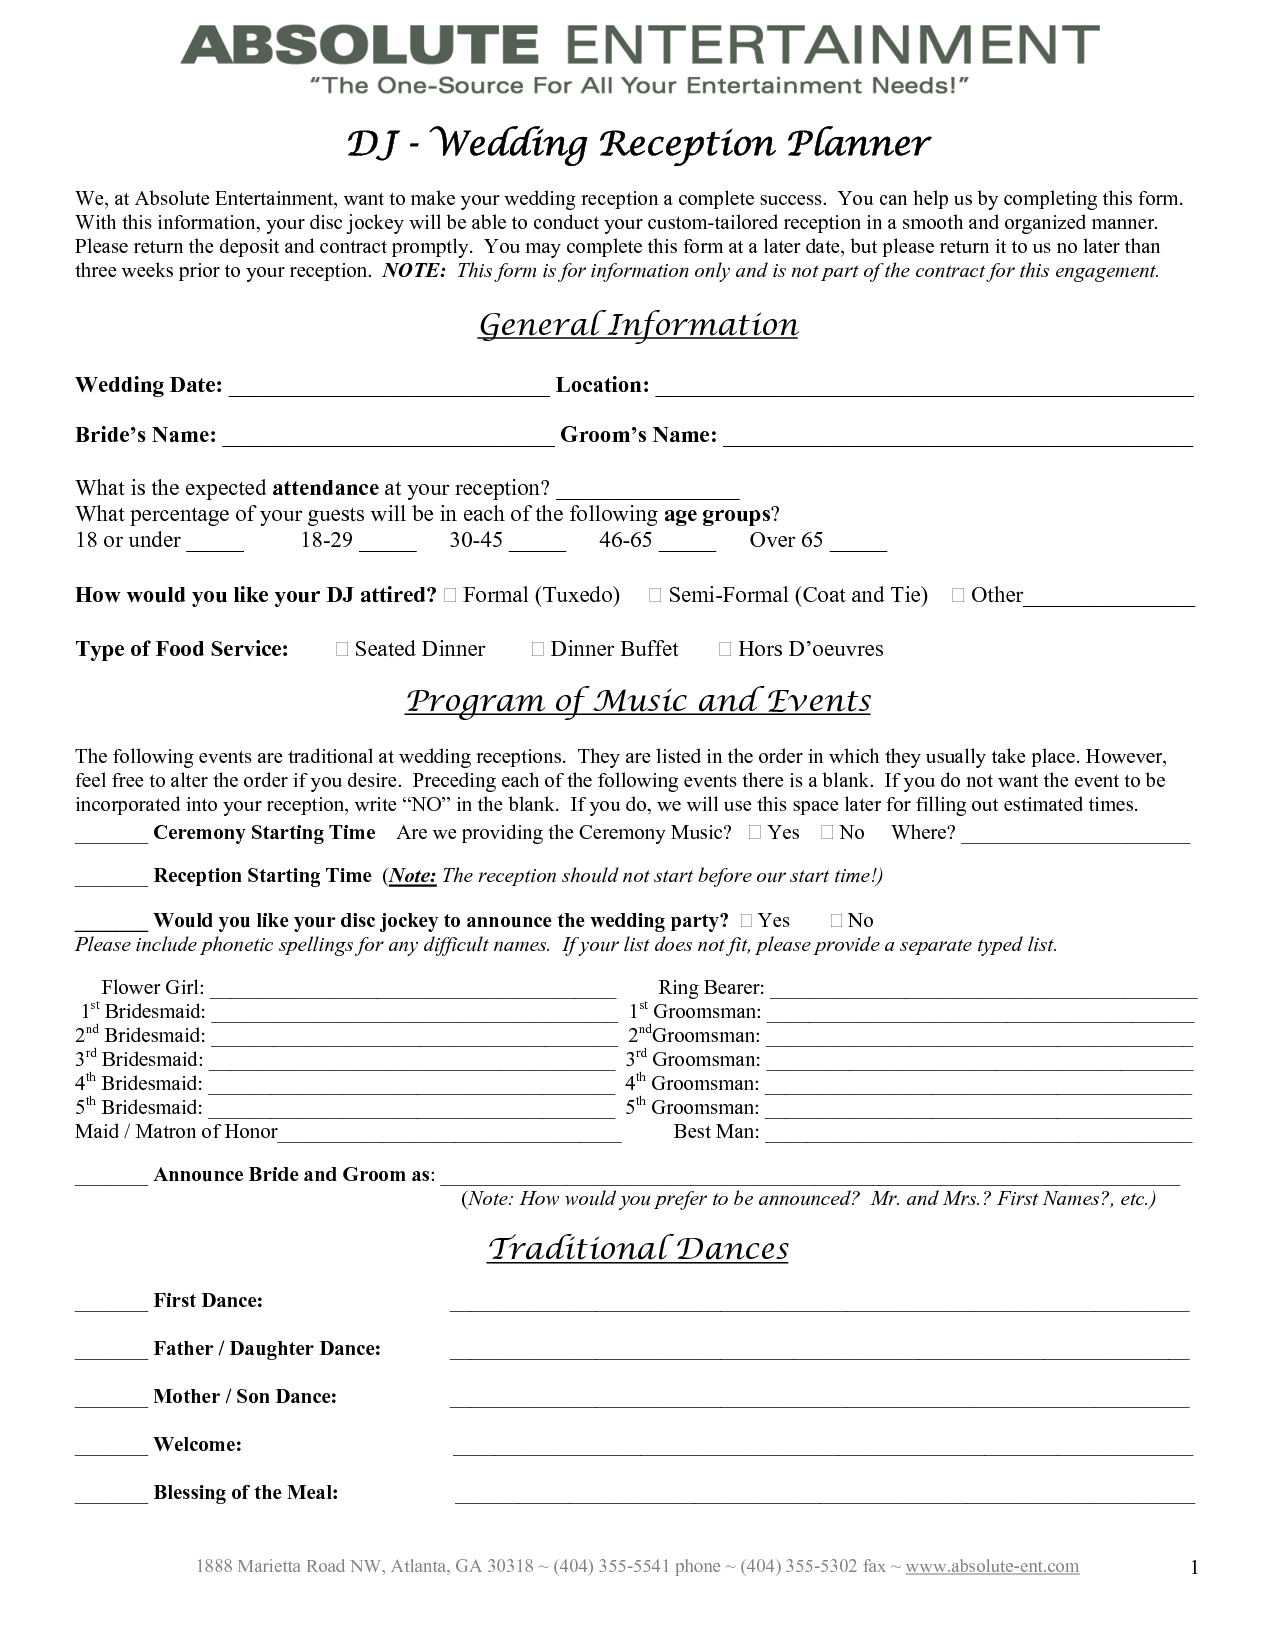 Wedding Planner Contract Template | baby shower | Pinterest ...